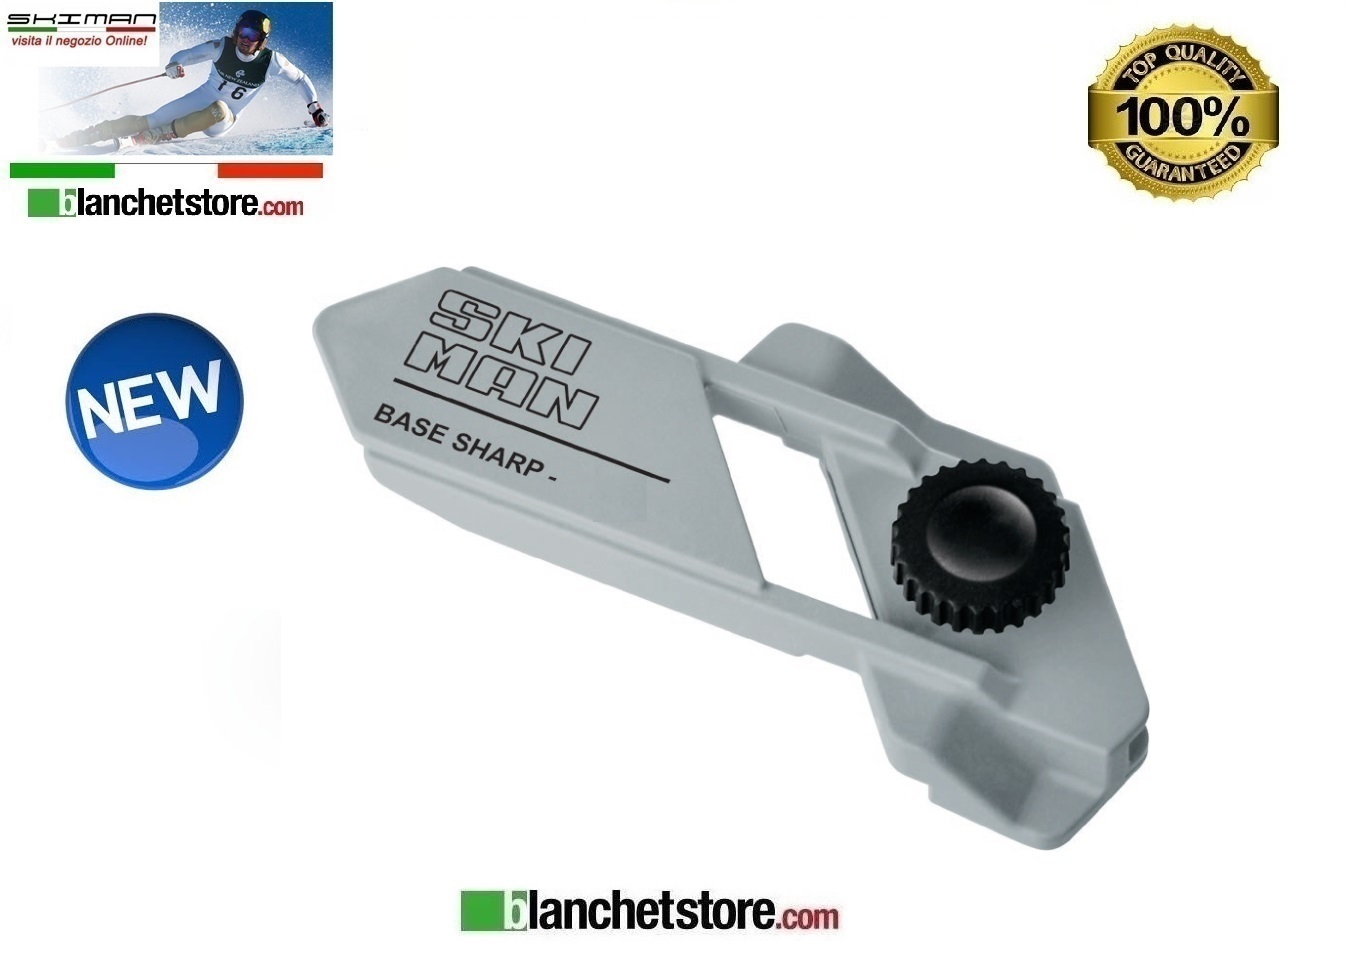 Guida lima per tuning Base sharp Ski man 0,75°